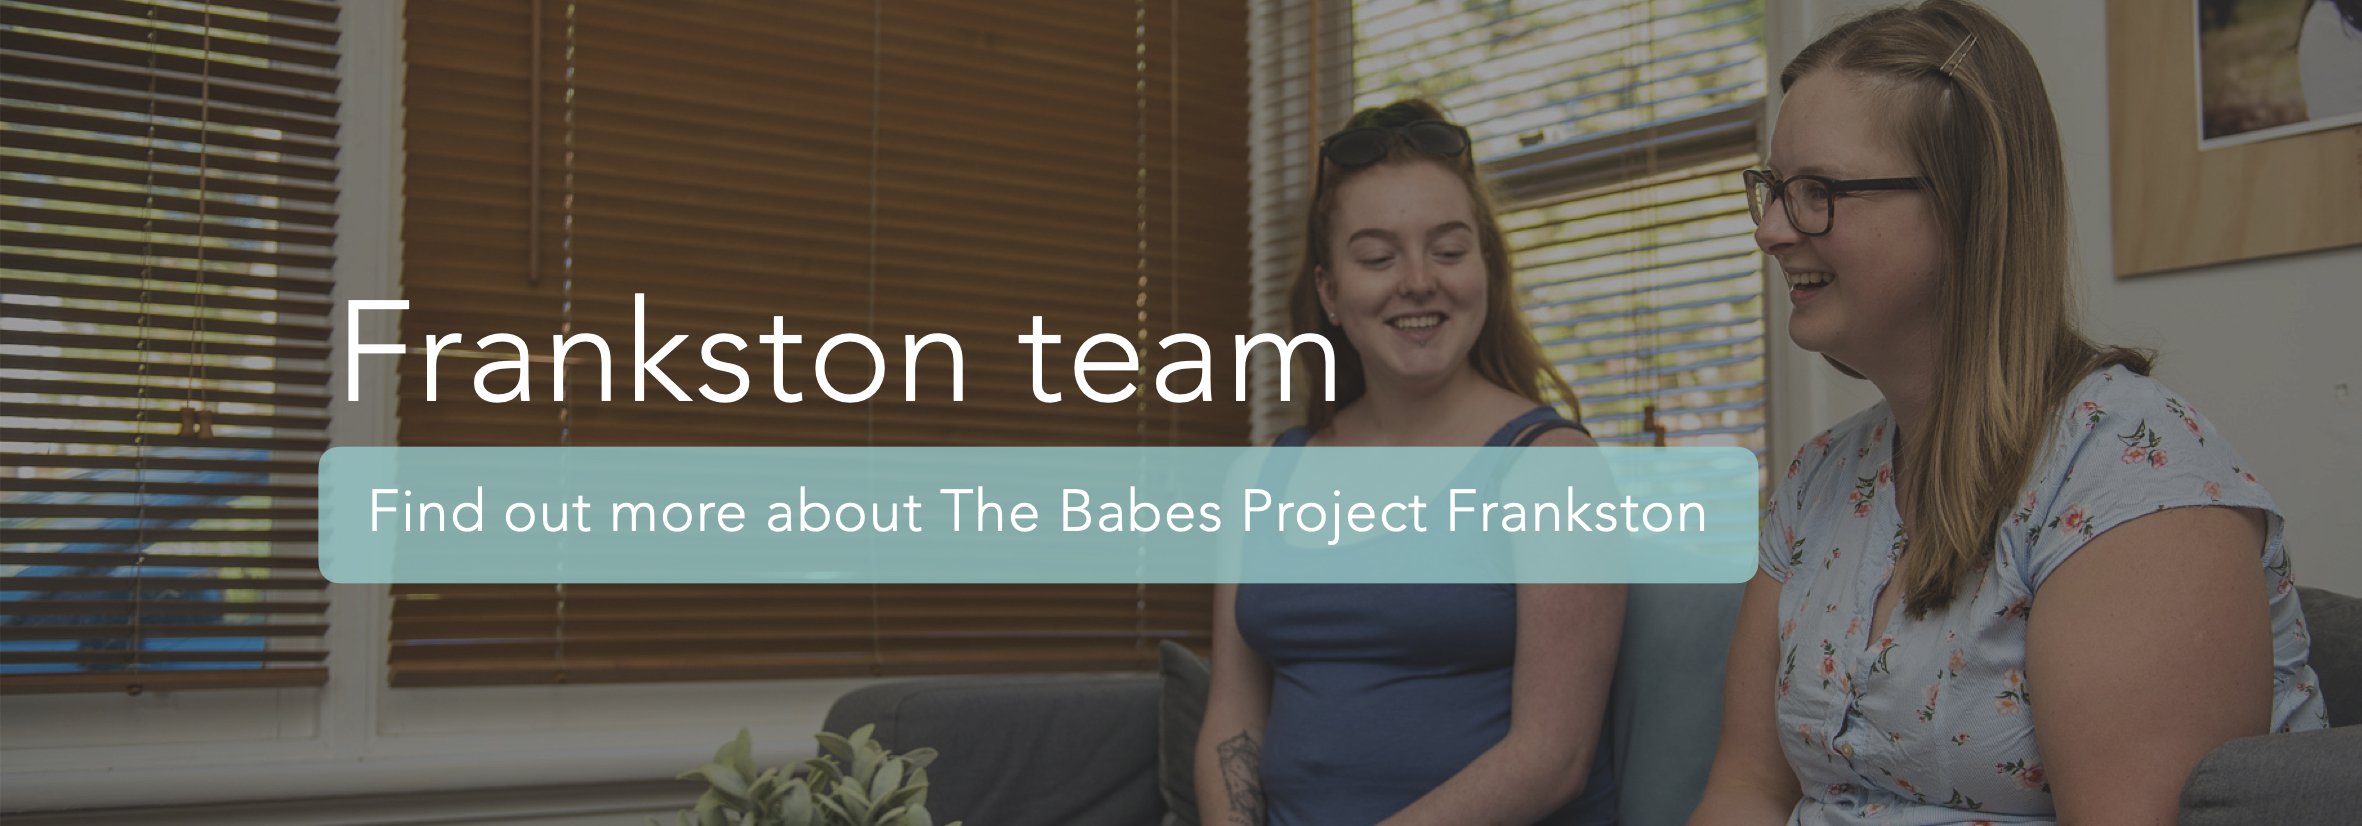 Website_photo_banner_2020_-_Frankston_team.jpg